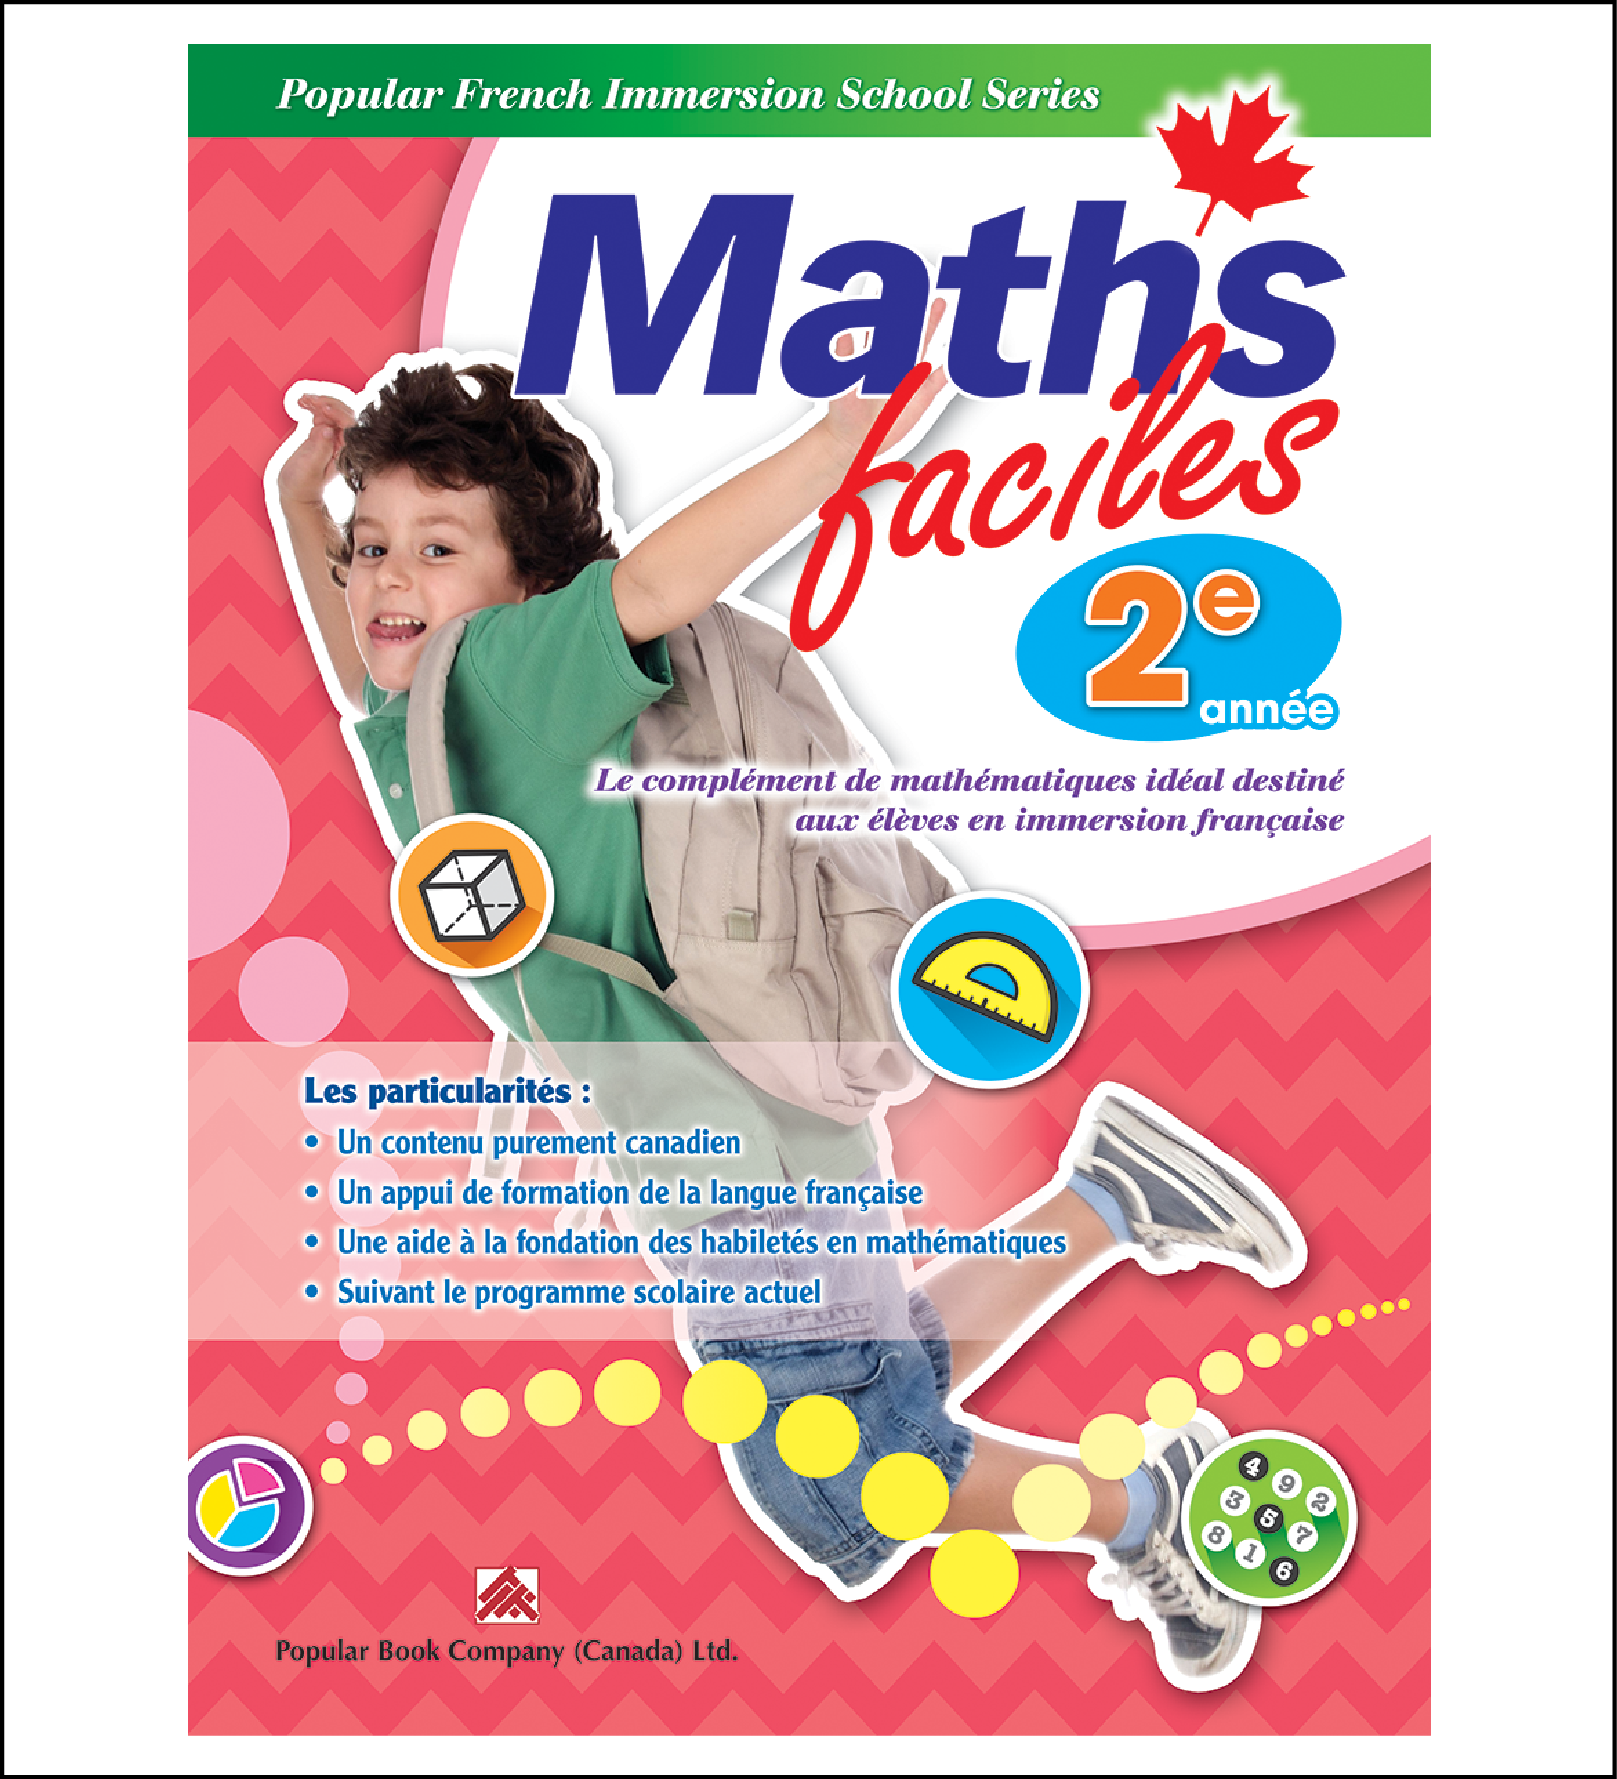 Canadian Curriculum Workbook for French Immersion School Maths faciles grade 2